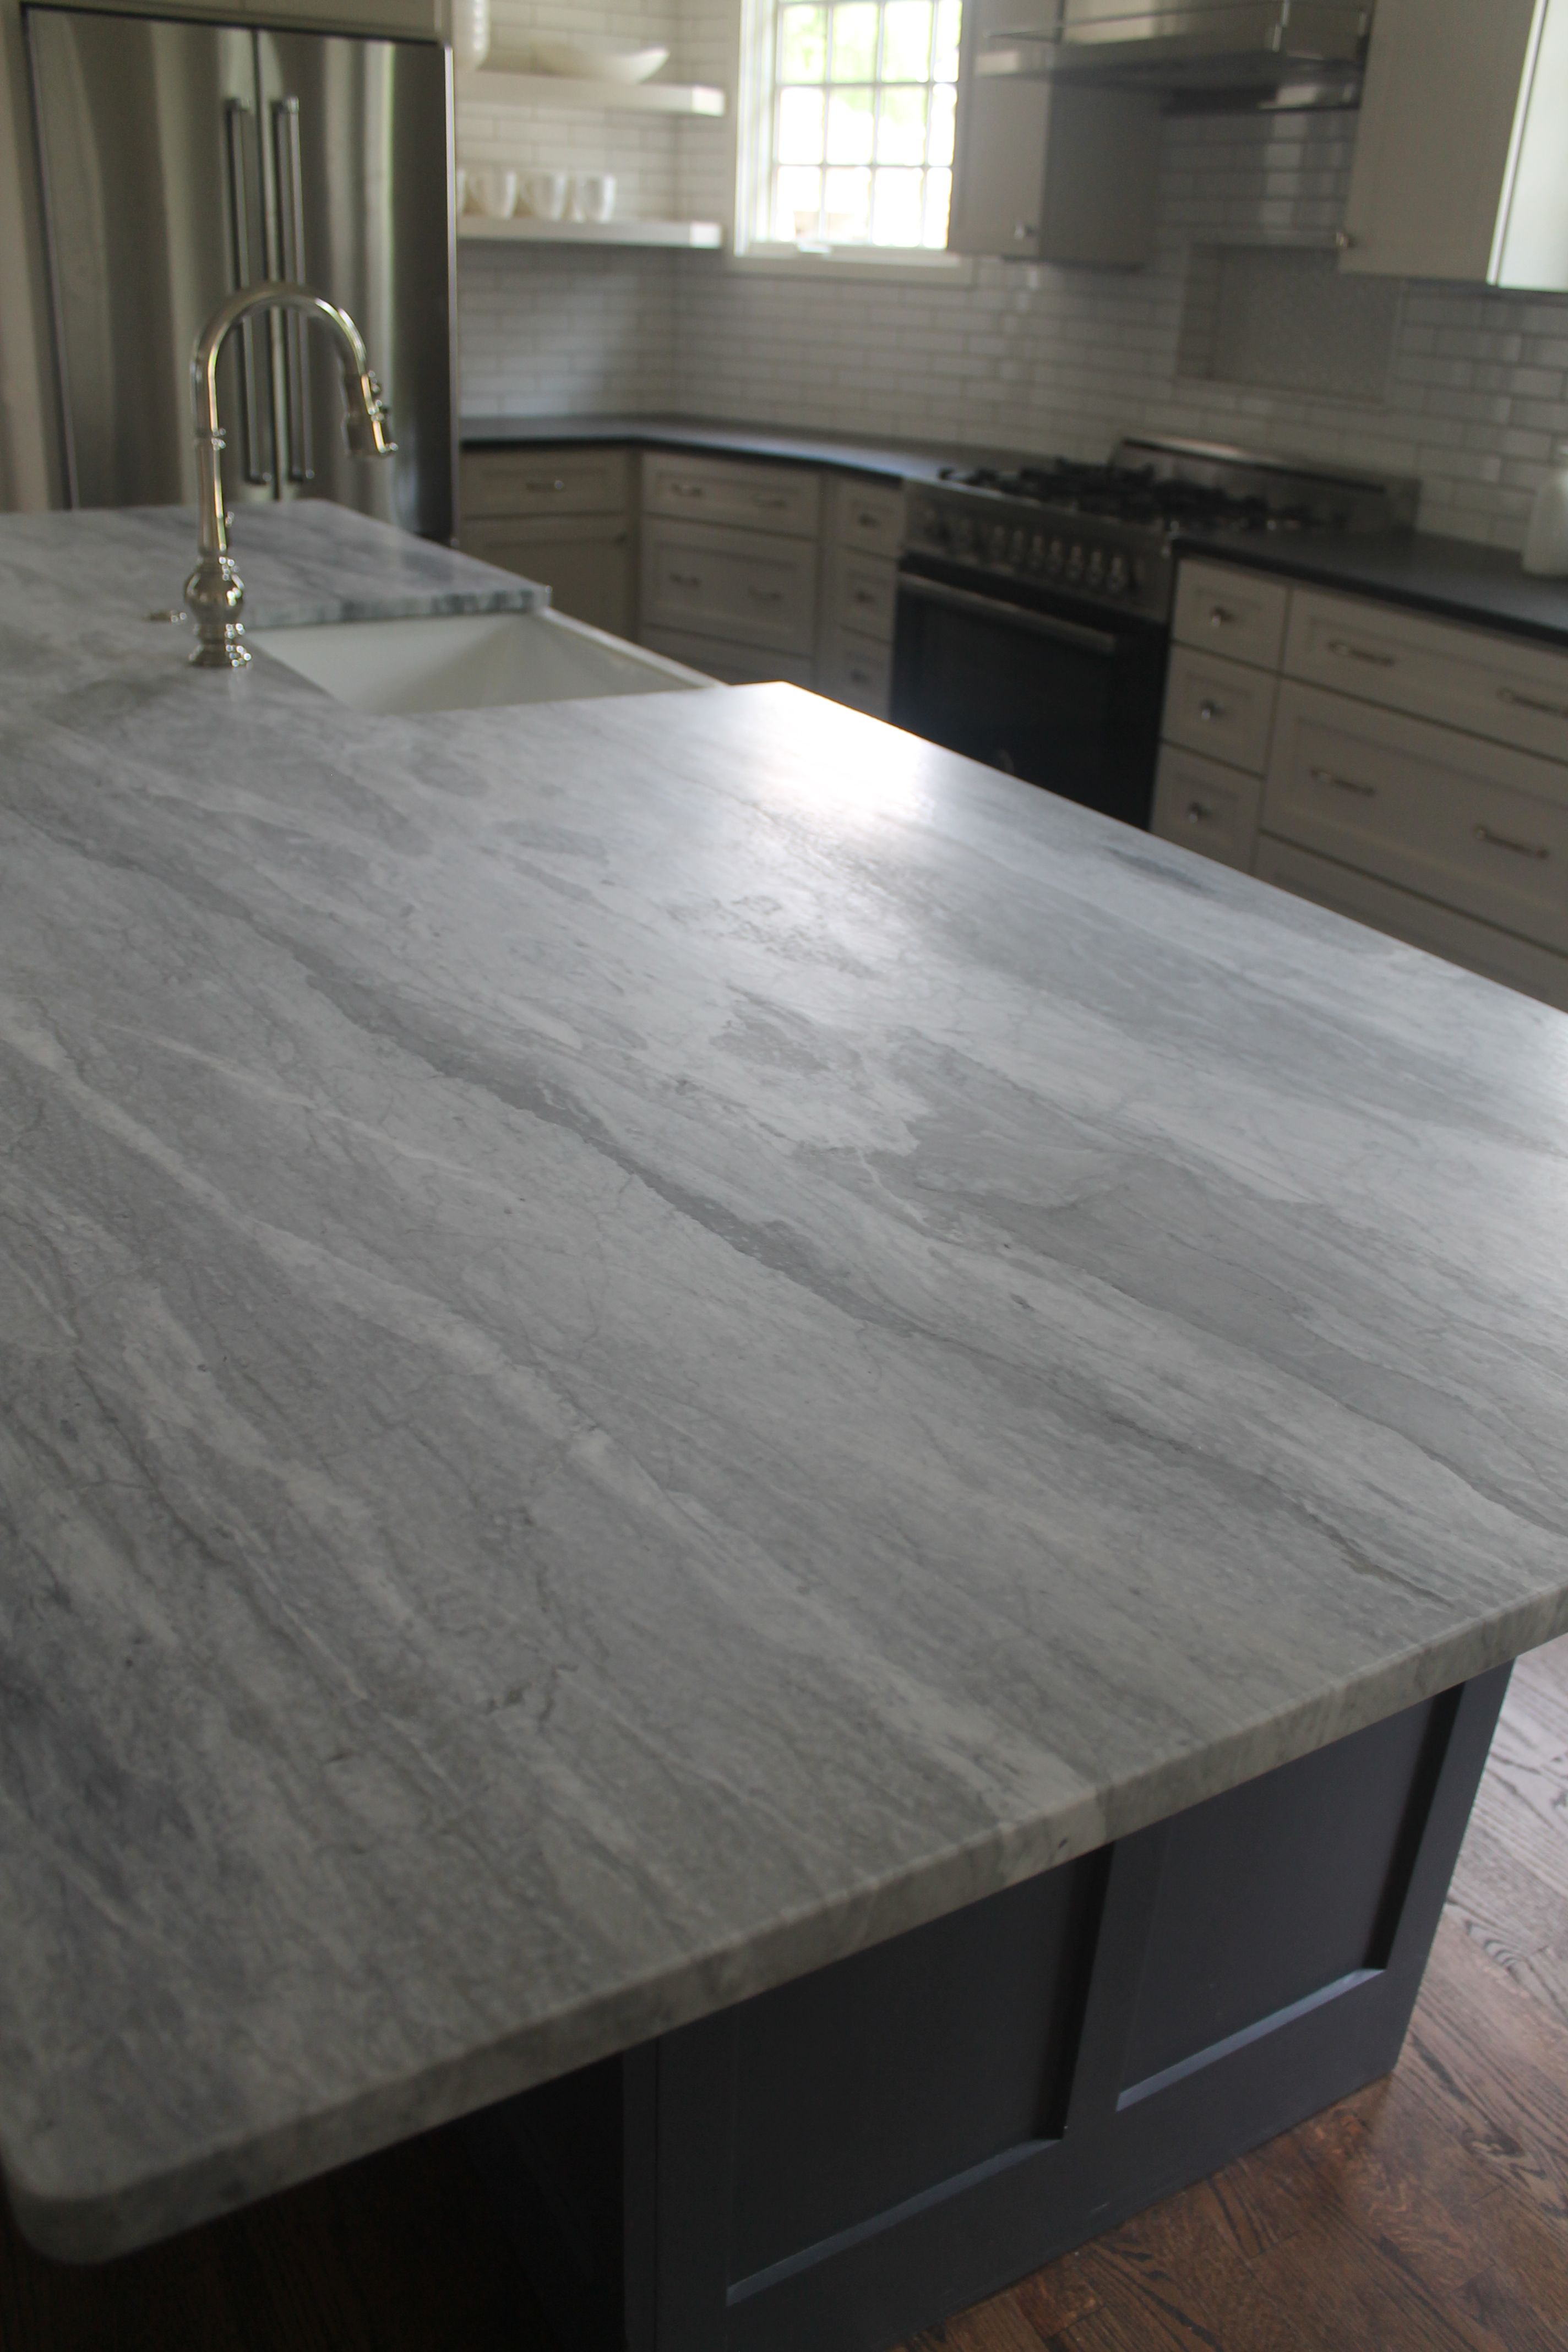 Bianco Pearla Leathered Marble Our Work In 2019